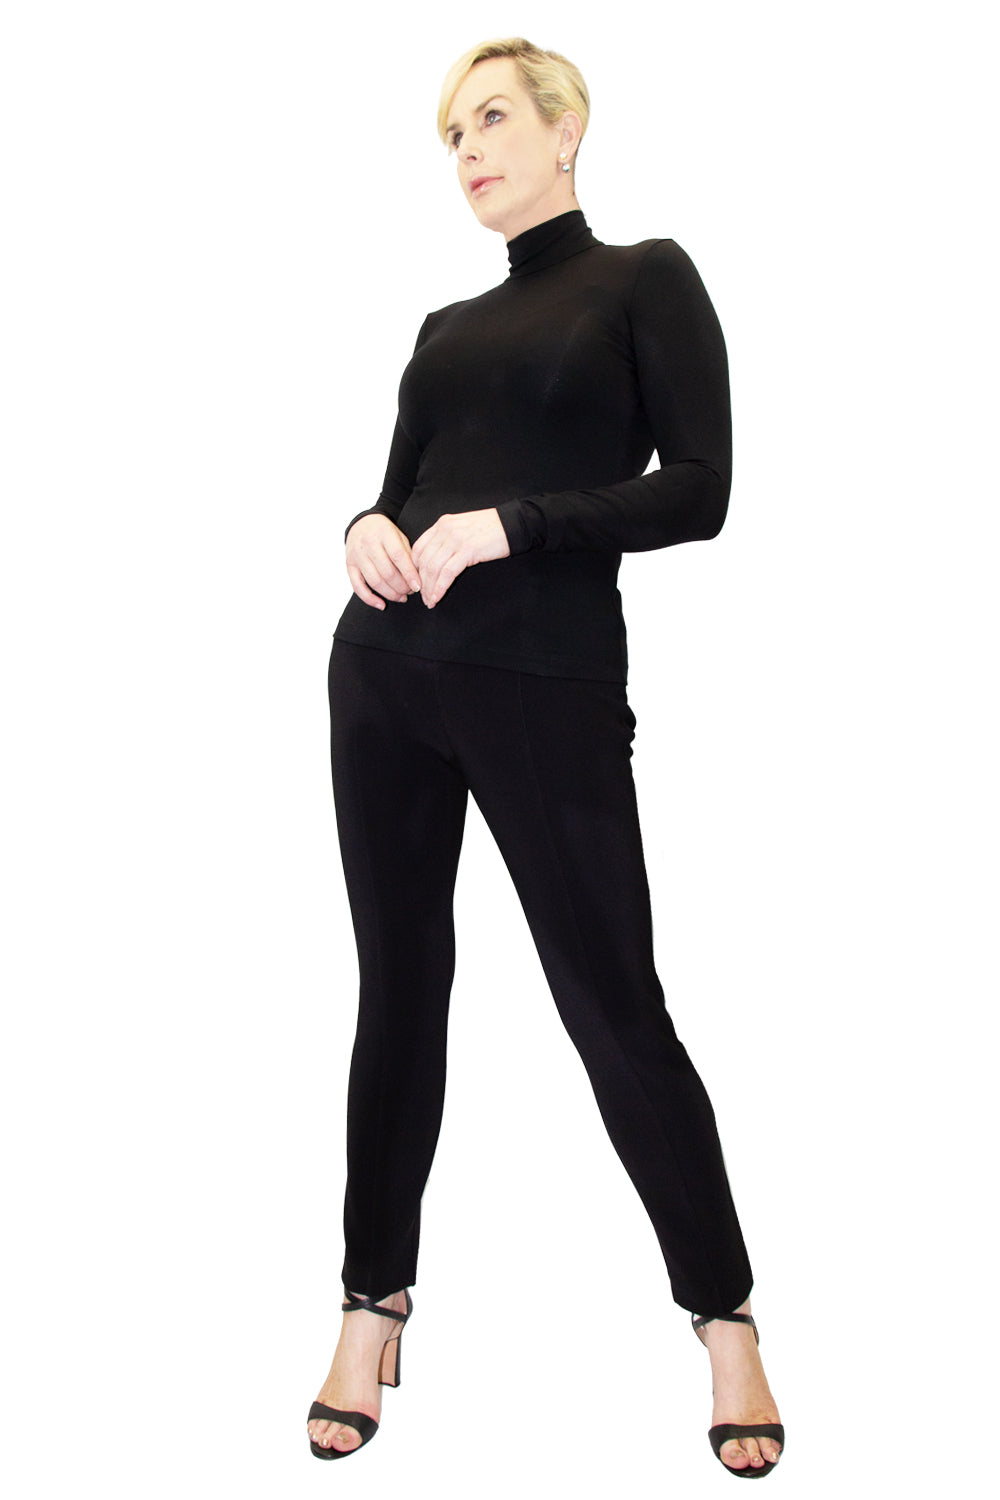 Modal Long Sleeve Zip Mock Neck - W5480306